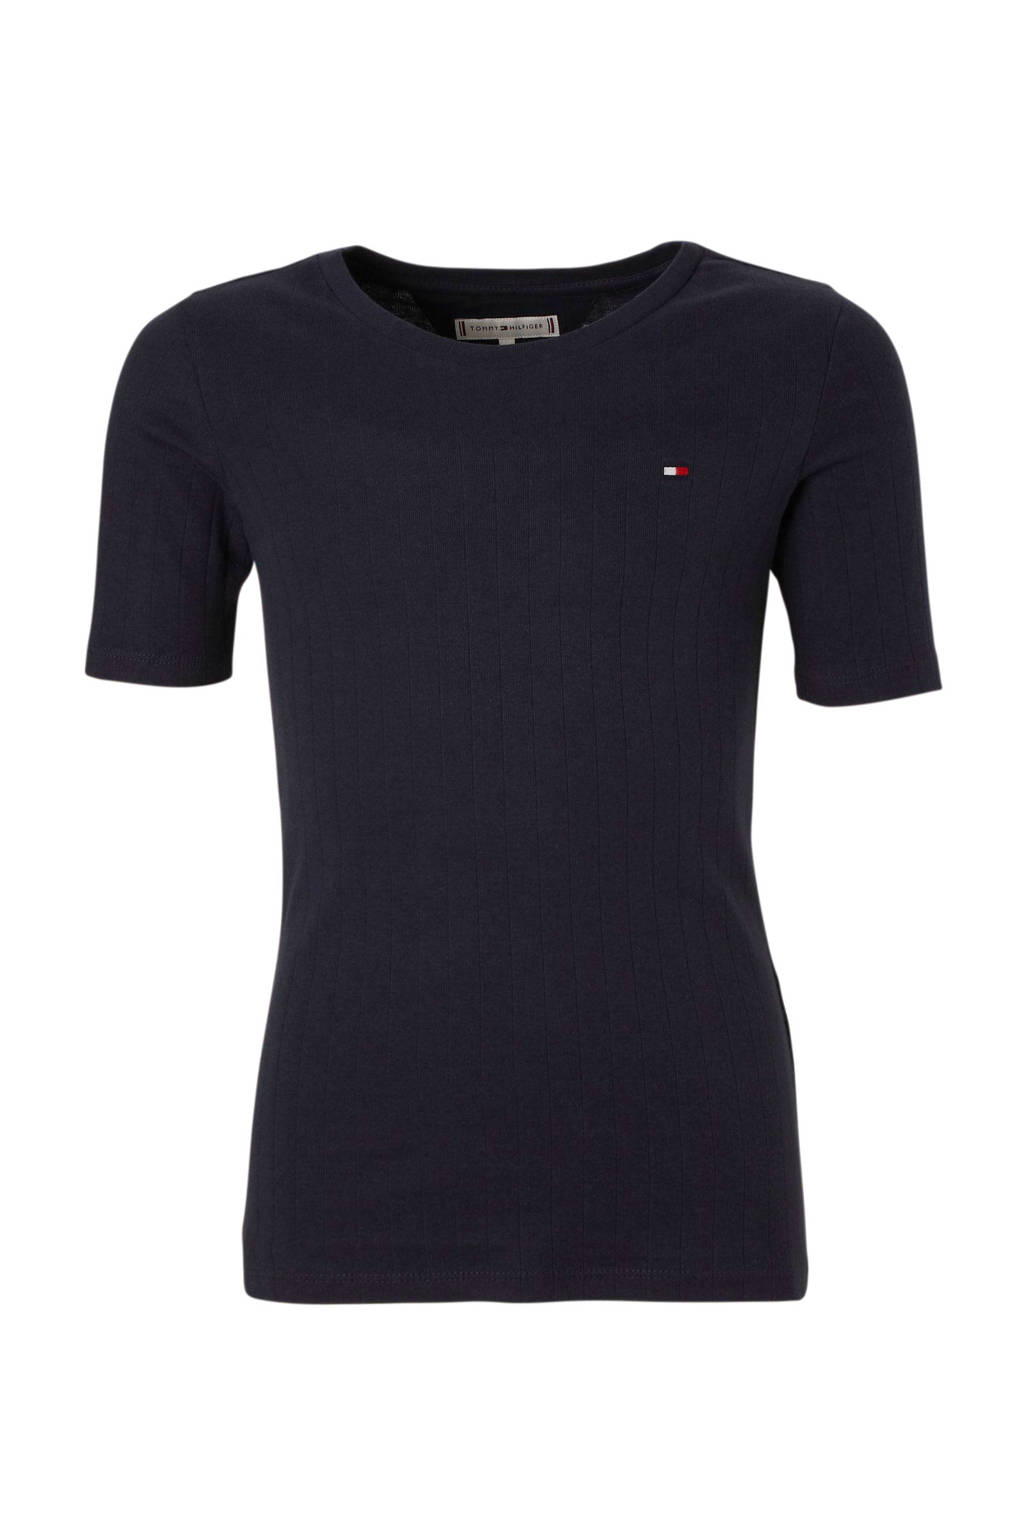 Tommy Hilfiger T-shirt donkerblauw, Donkerblauw